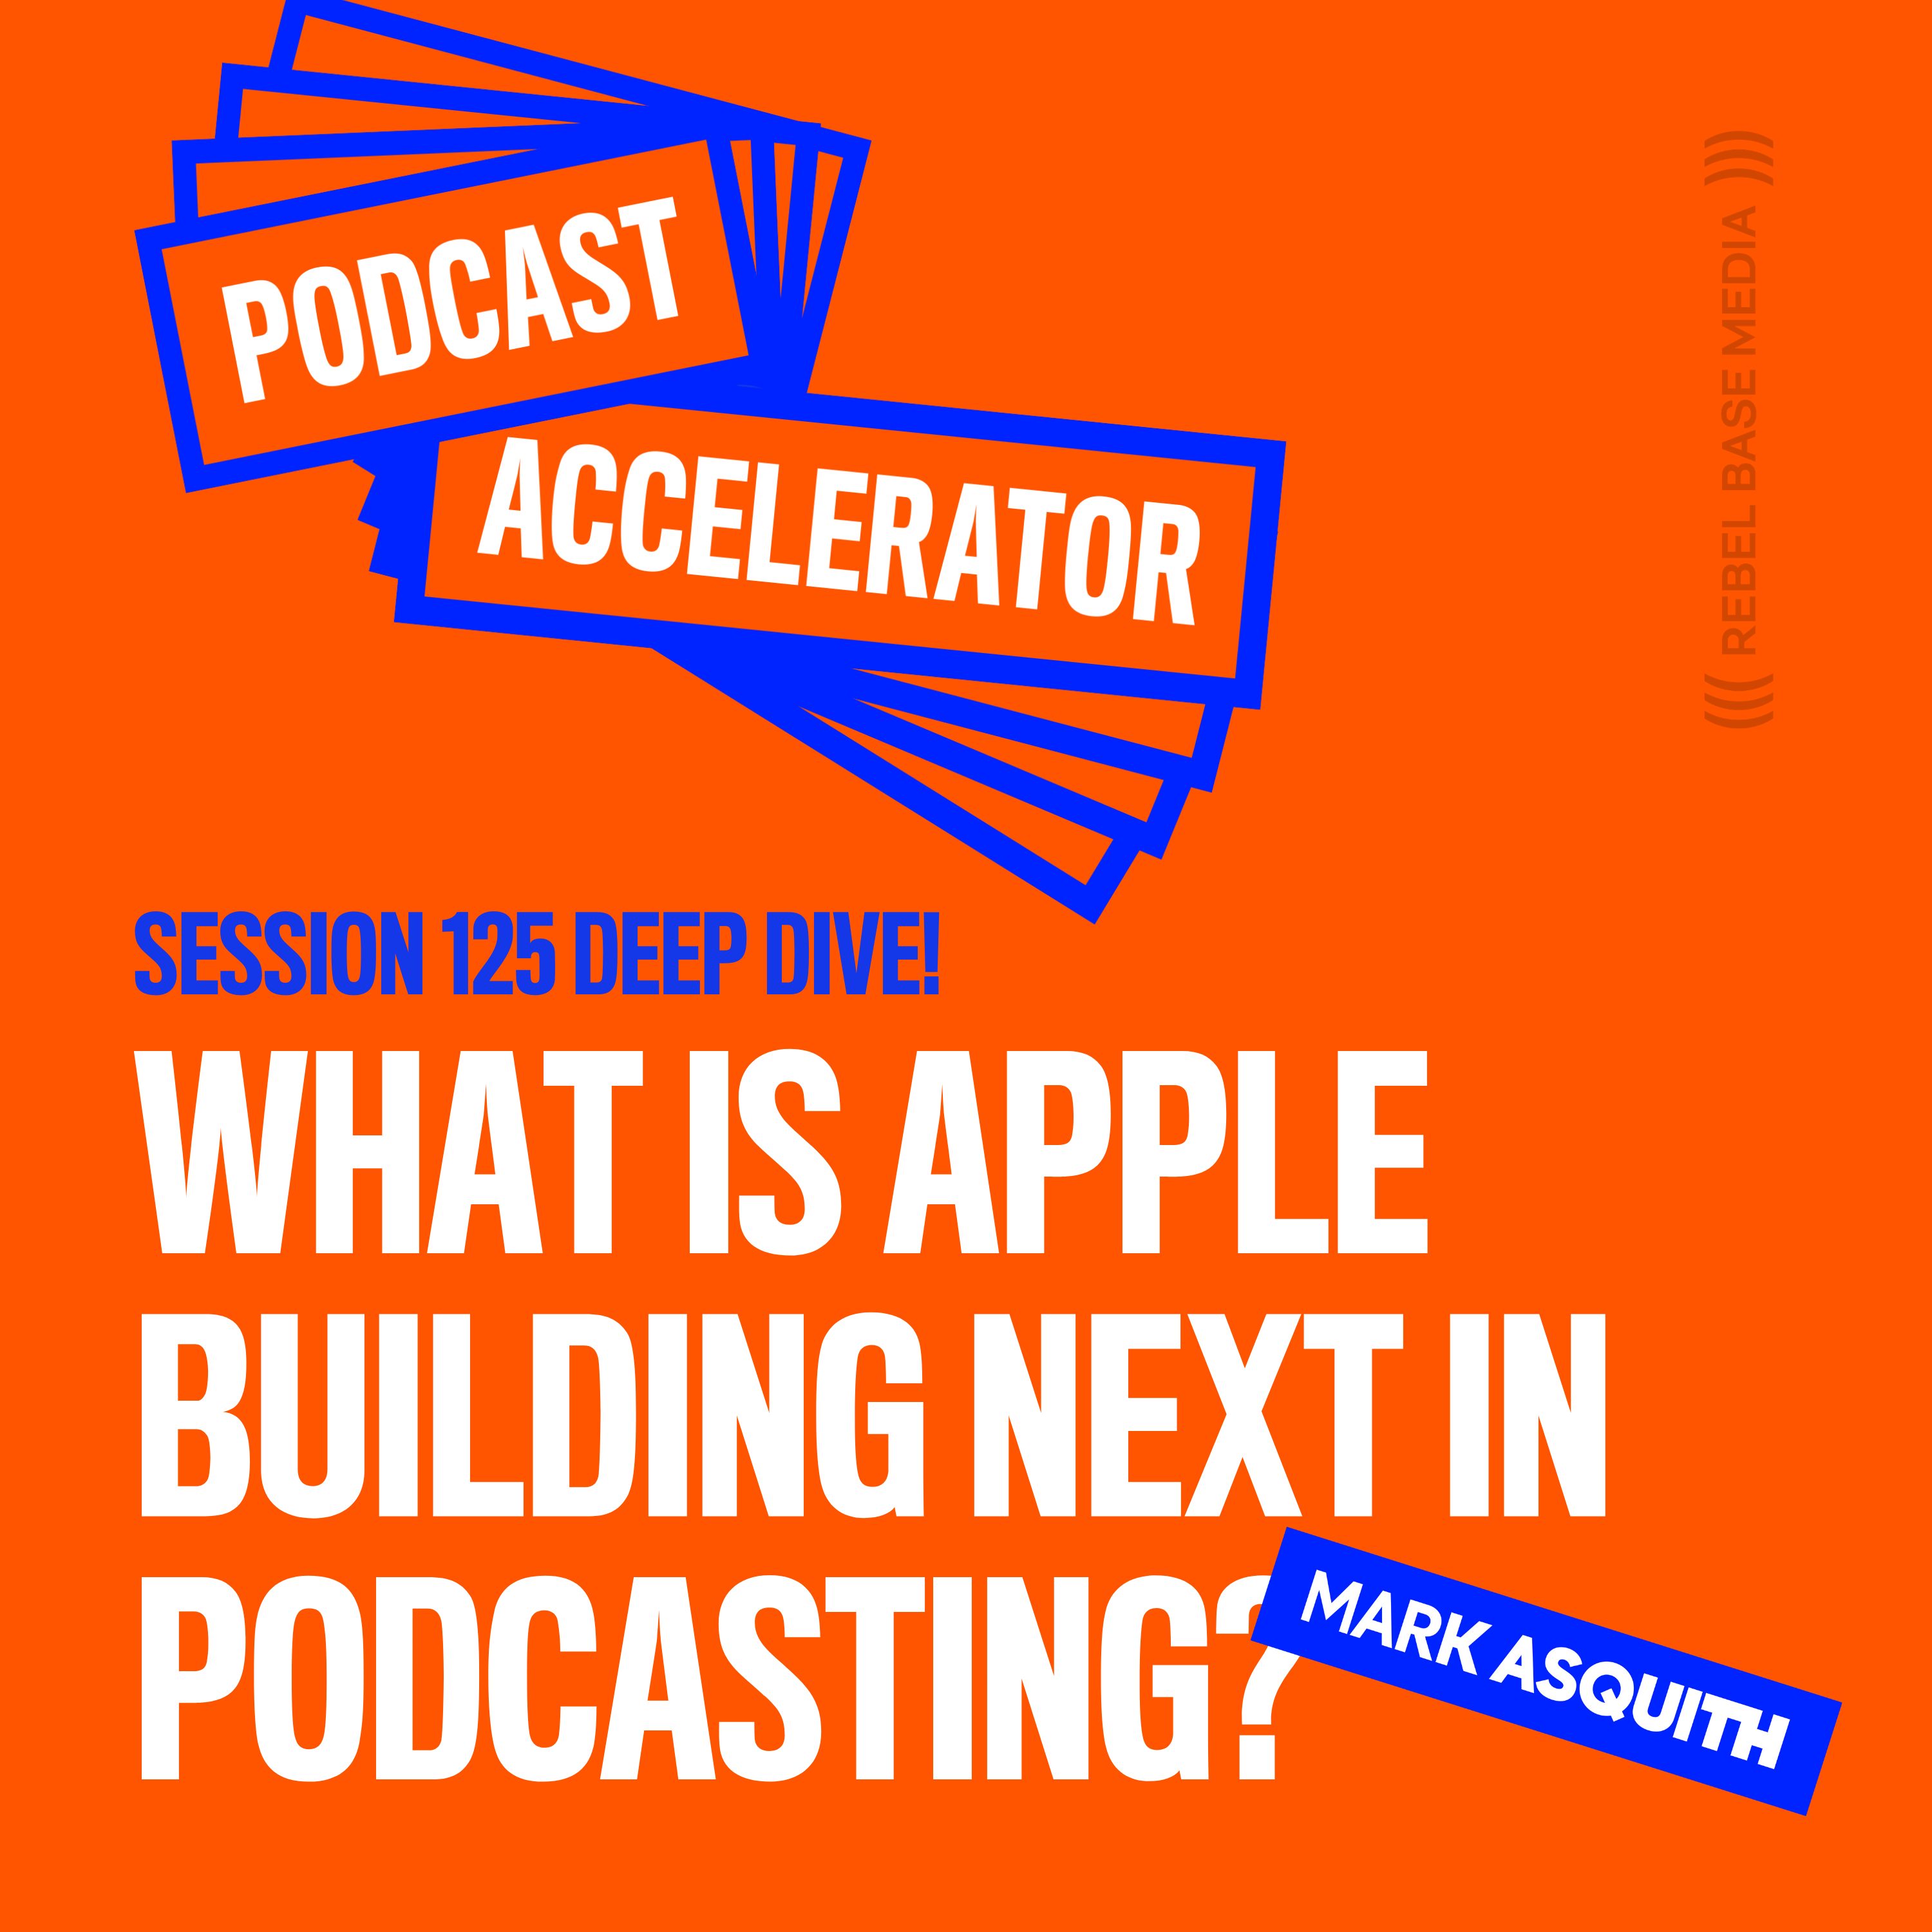 Artwork for podcast The Podcast Accelerator